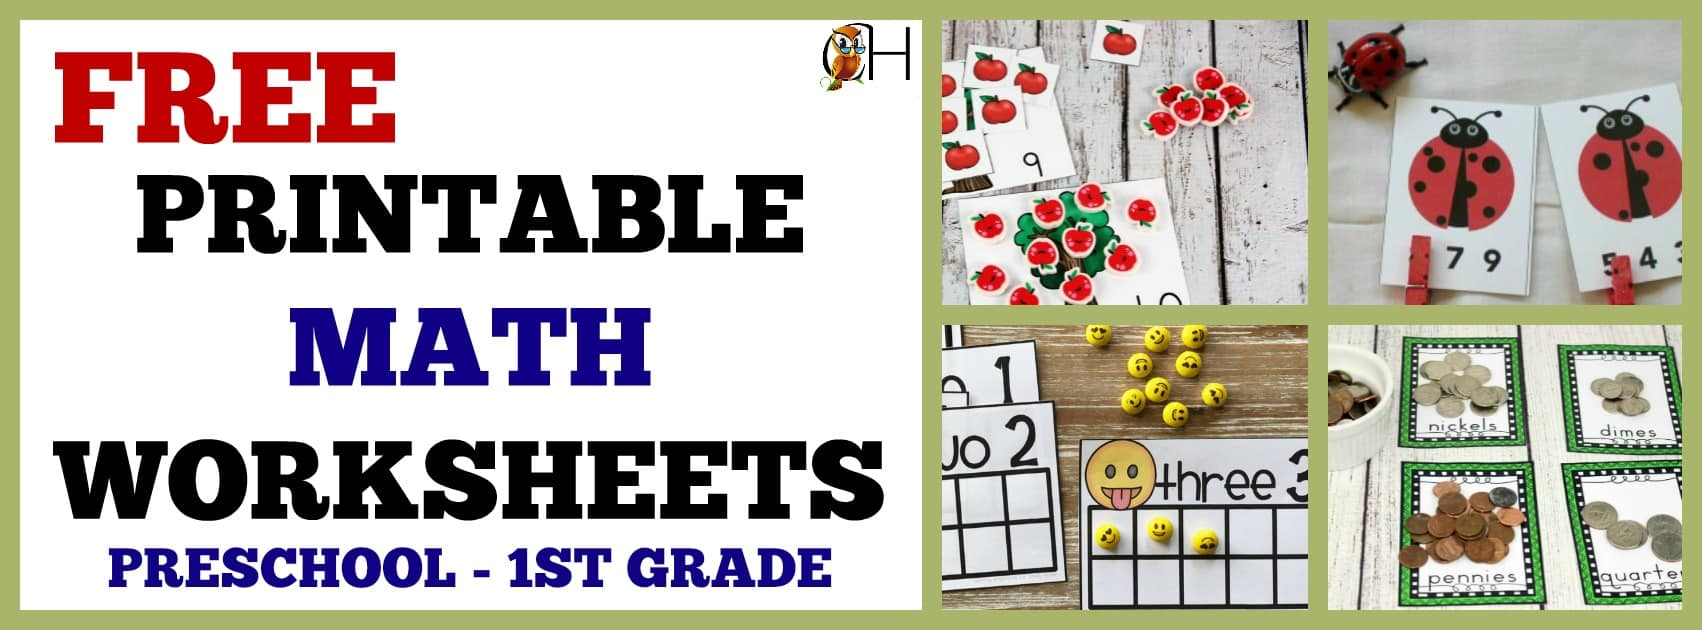 Free Printable Math Worksheets for Preschool - 1st Grade ...